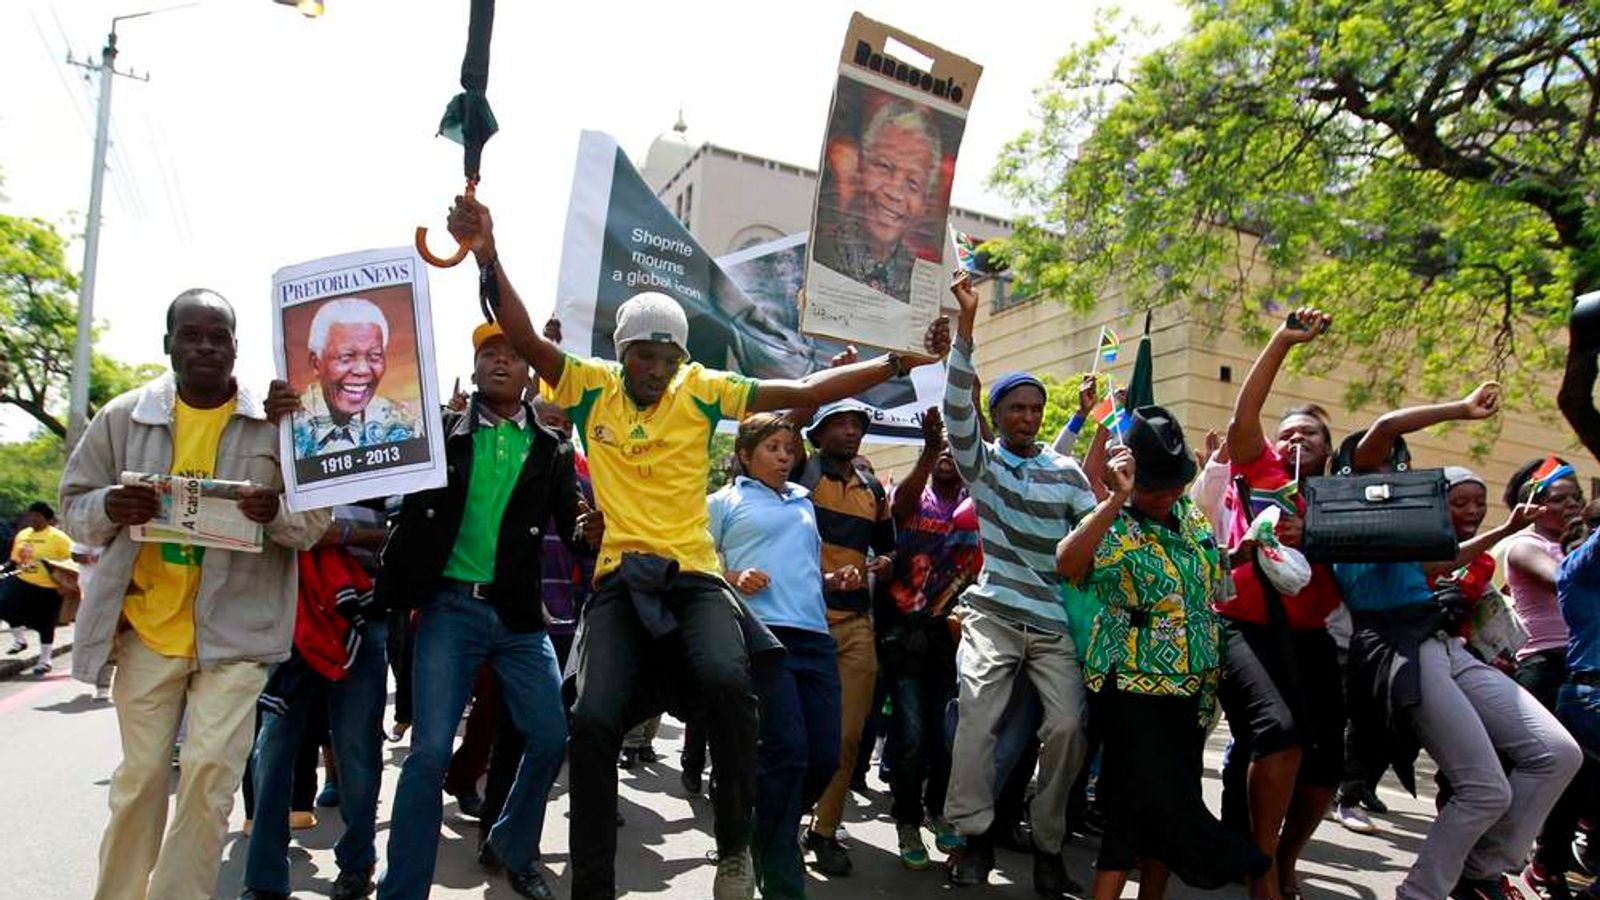 People chant slogans and dance as they prepare to view the body of former South African President Nelson Mandela as it lies in state, outside the Union Buildings in Pretoria